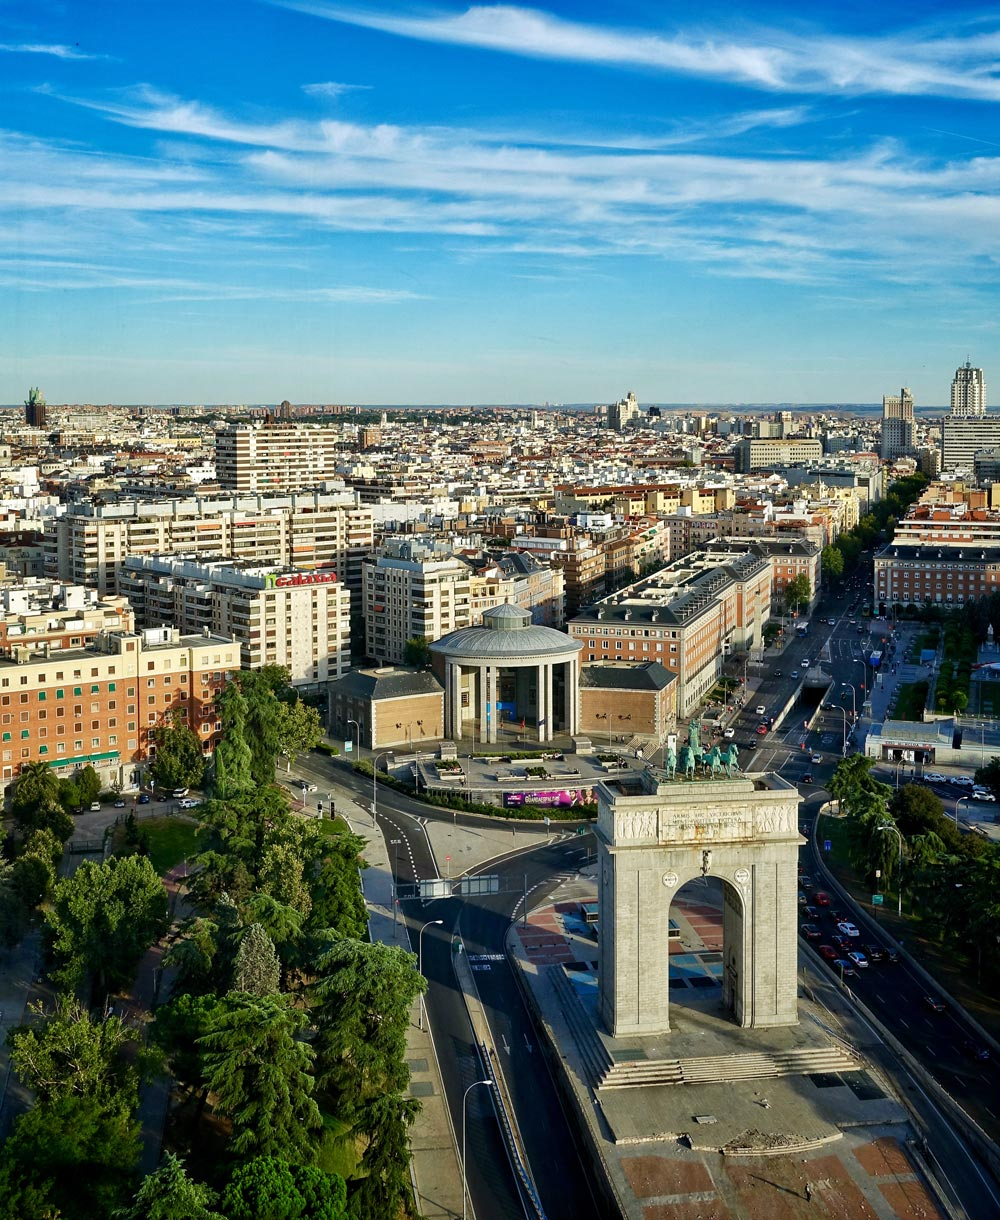 Faro de Moncloa in Madrid